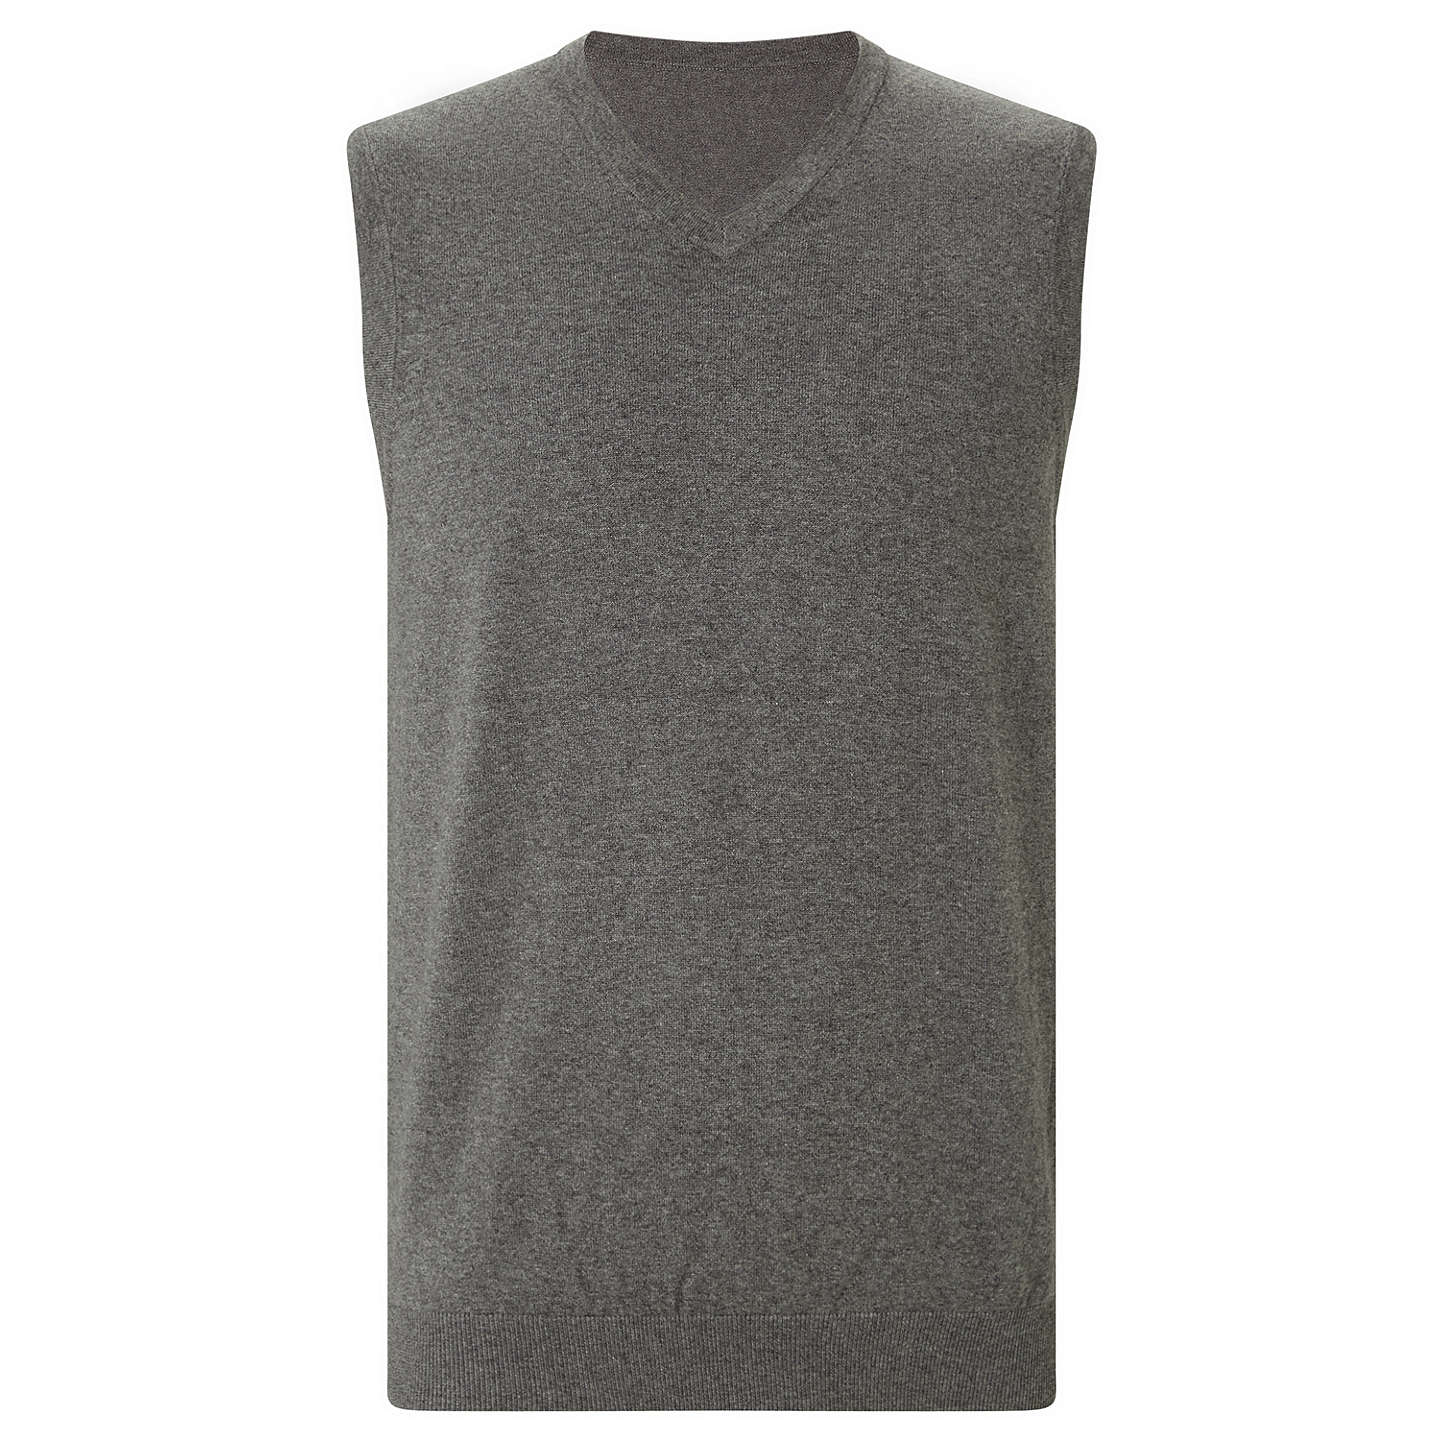 BuyJohn Lewis Cotton Rich V-Neck Tank Top, Charcoal, S Online at johnlewis.com